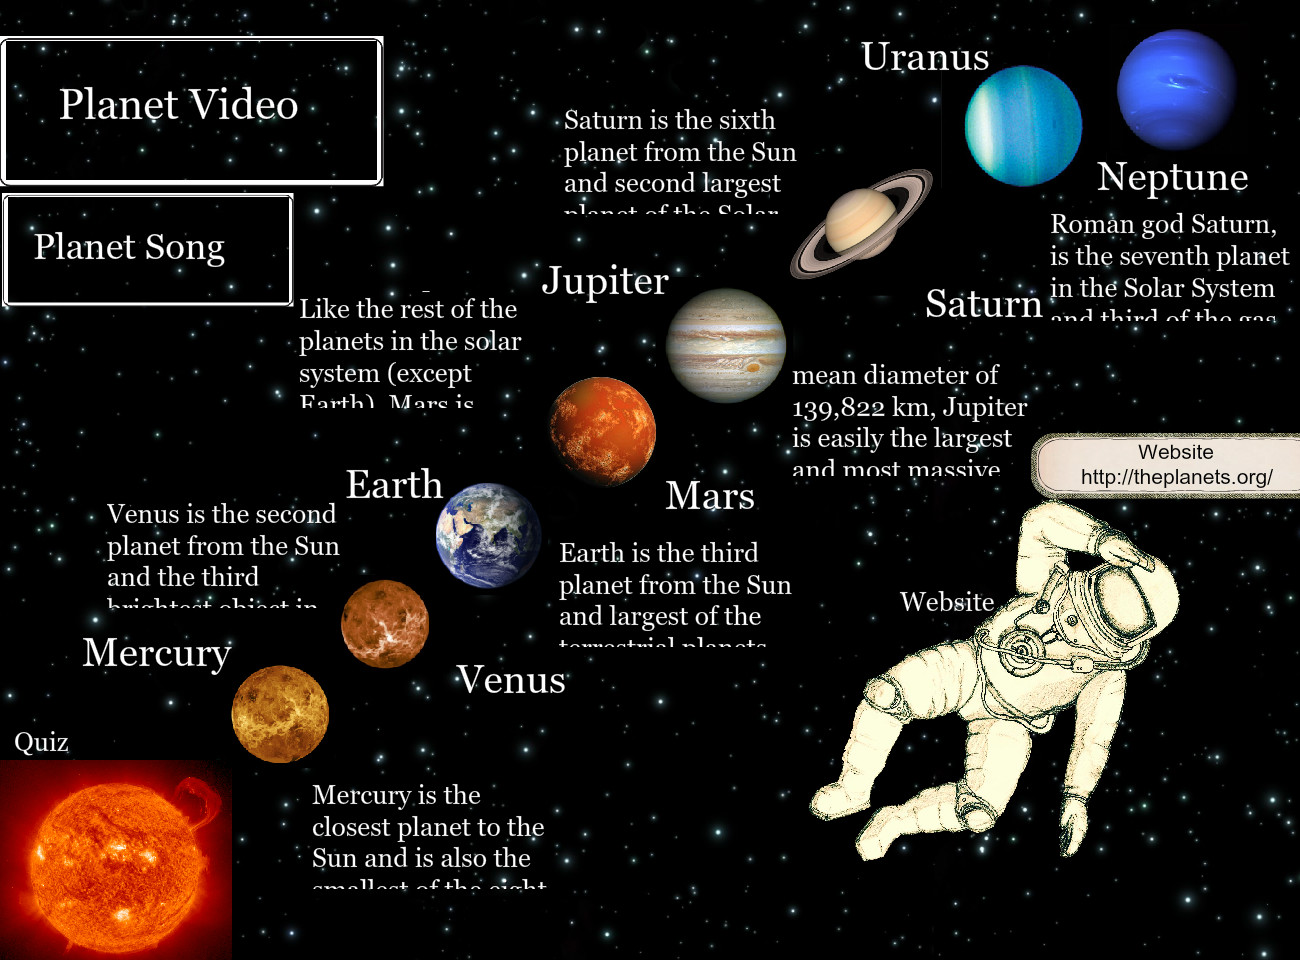 Mercury is the closest planet to the Sun 7